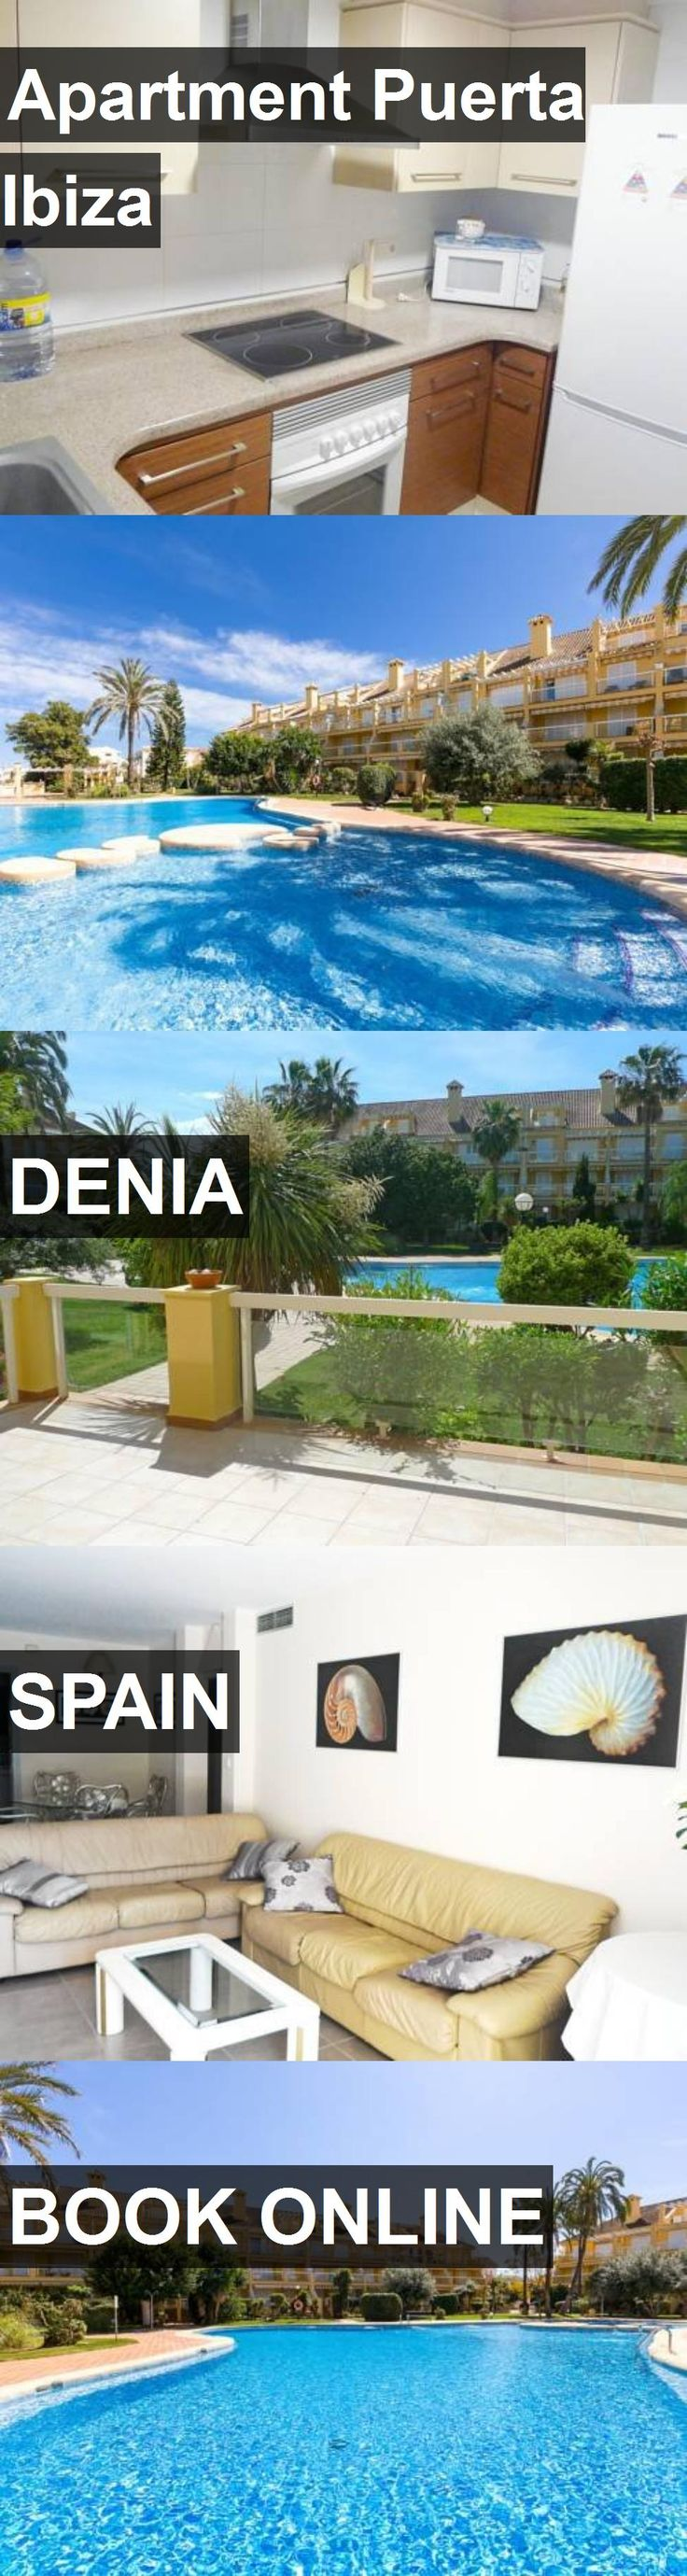 Hotel Apartment Puerta Ibiza in Denia, Spain. For more information, photos, reviews and best prices please follow the link. #Spain #Denia #ApartmentPuertaIbiza #hotel #travel #vacation